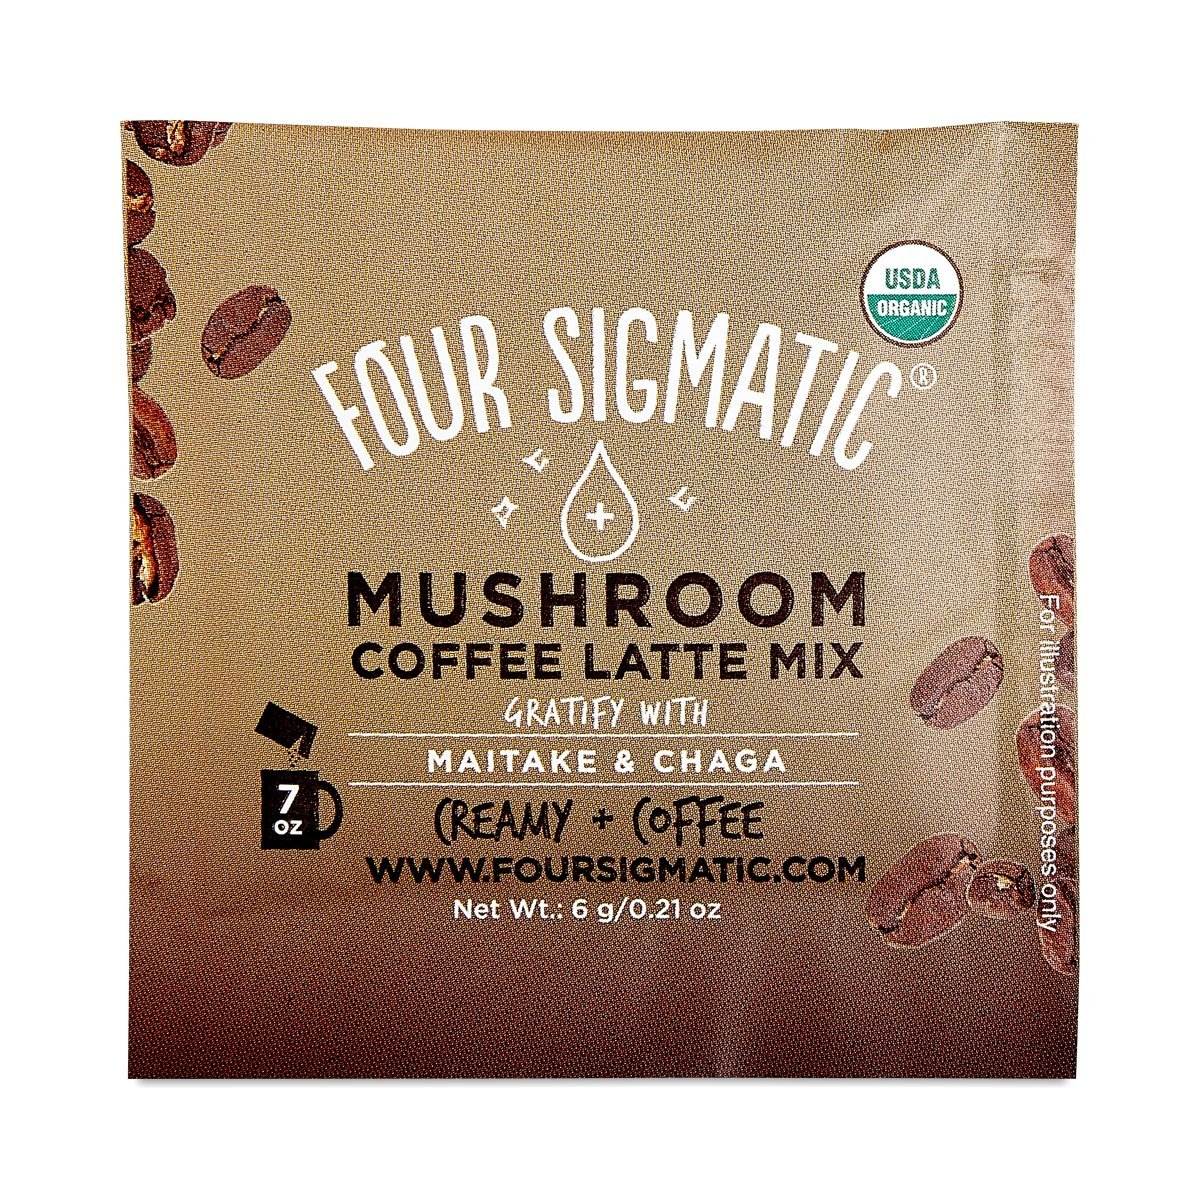 Mushroom Coffee Latte Mix With Maitake & Chaga Four Sigmatic 10 Packets